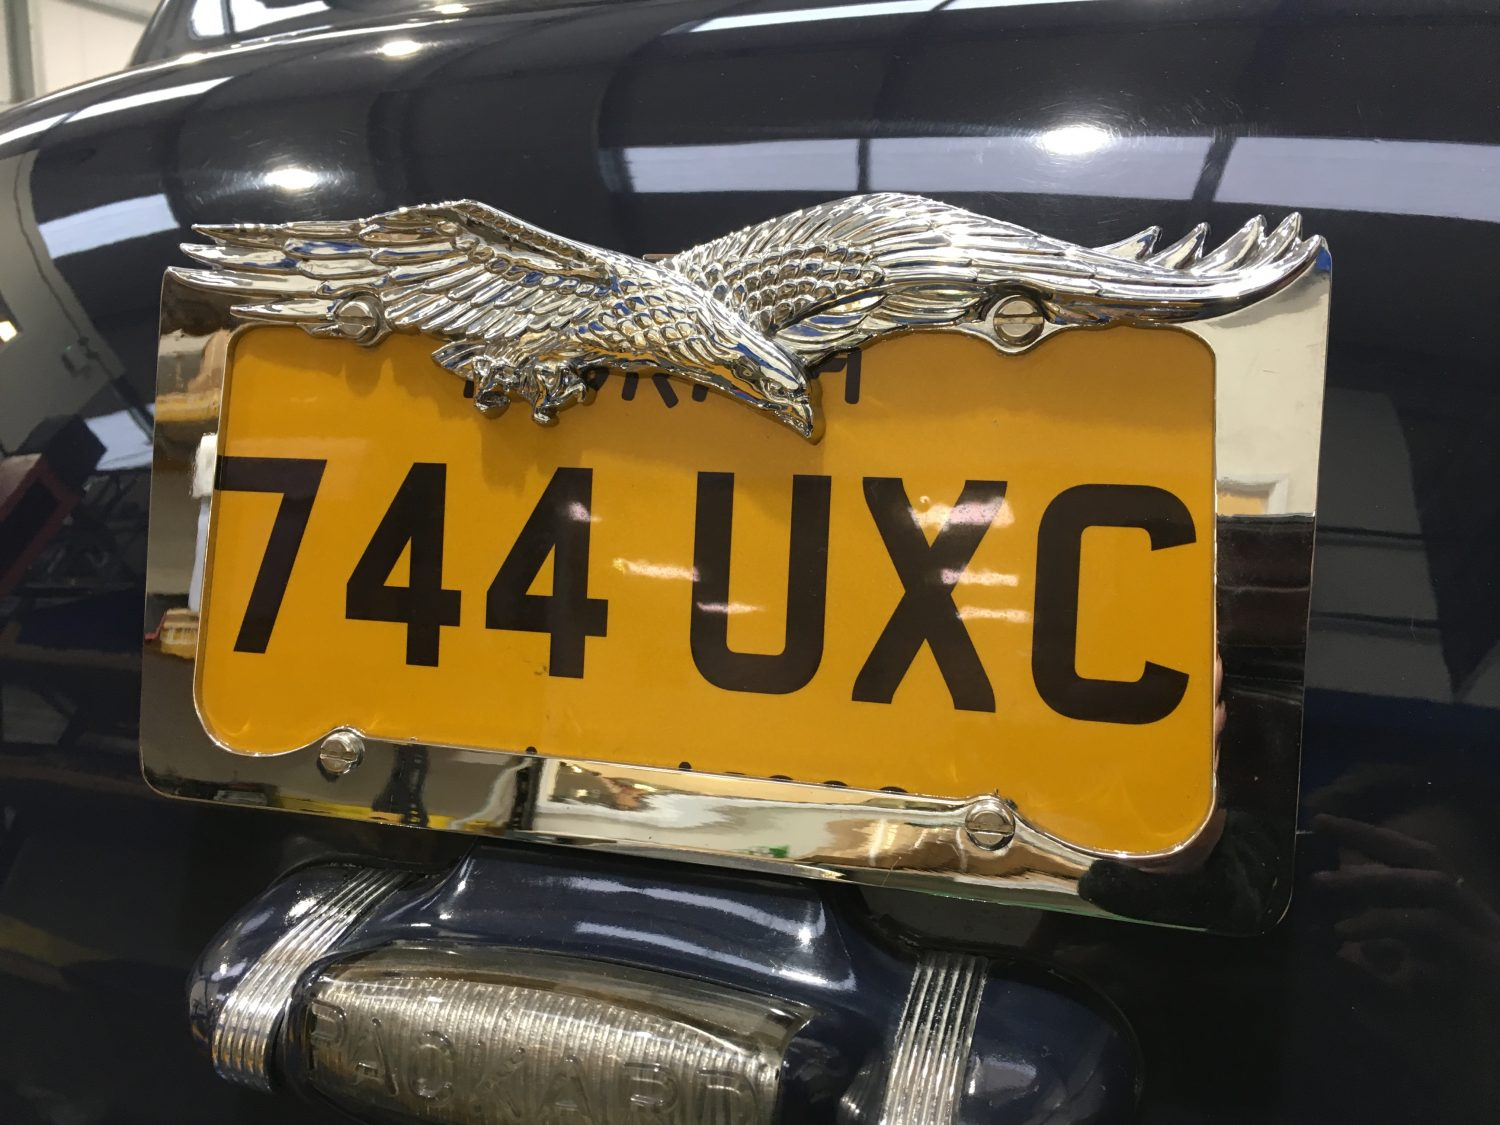 Packard Number Plates